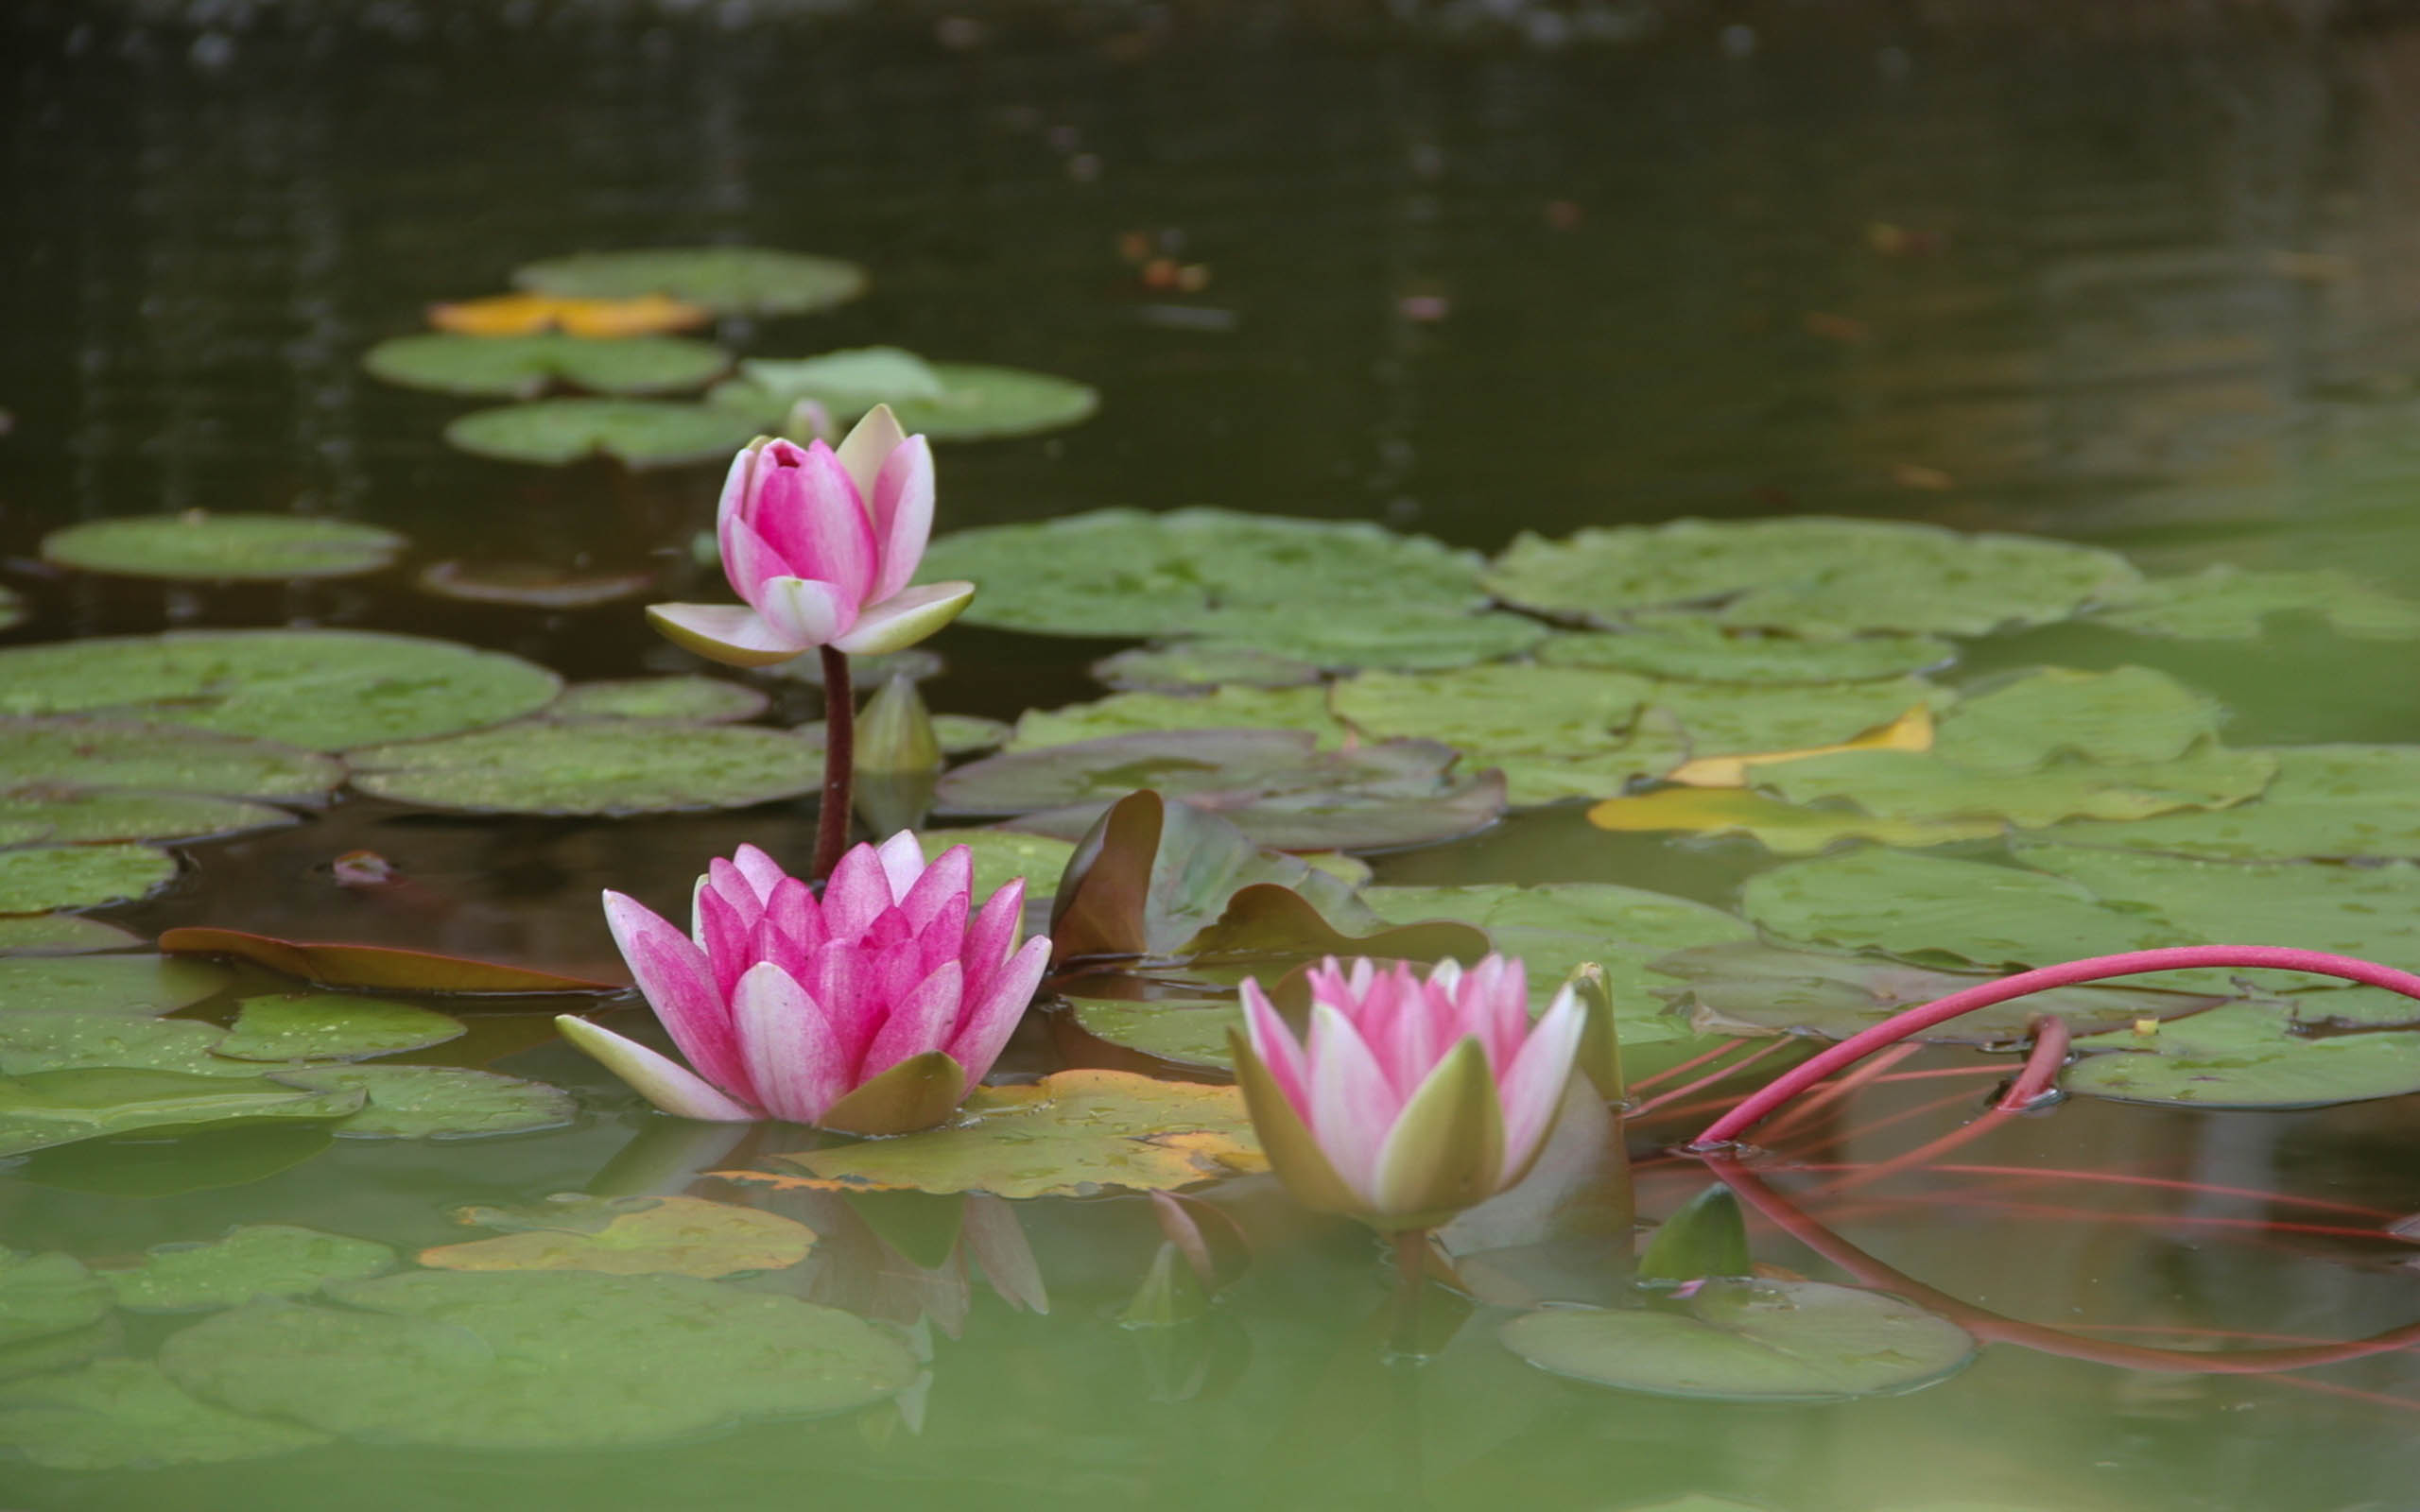 Lotus flower beautiful high quality hd wallpapers all hd wallpapers lotus flower beautiful high quality hd wallpapers izmirmasajfo